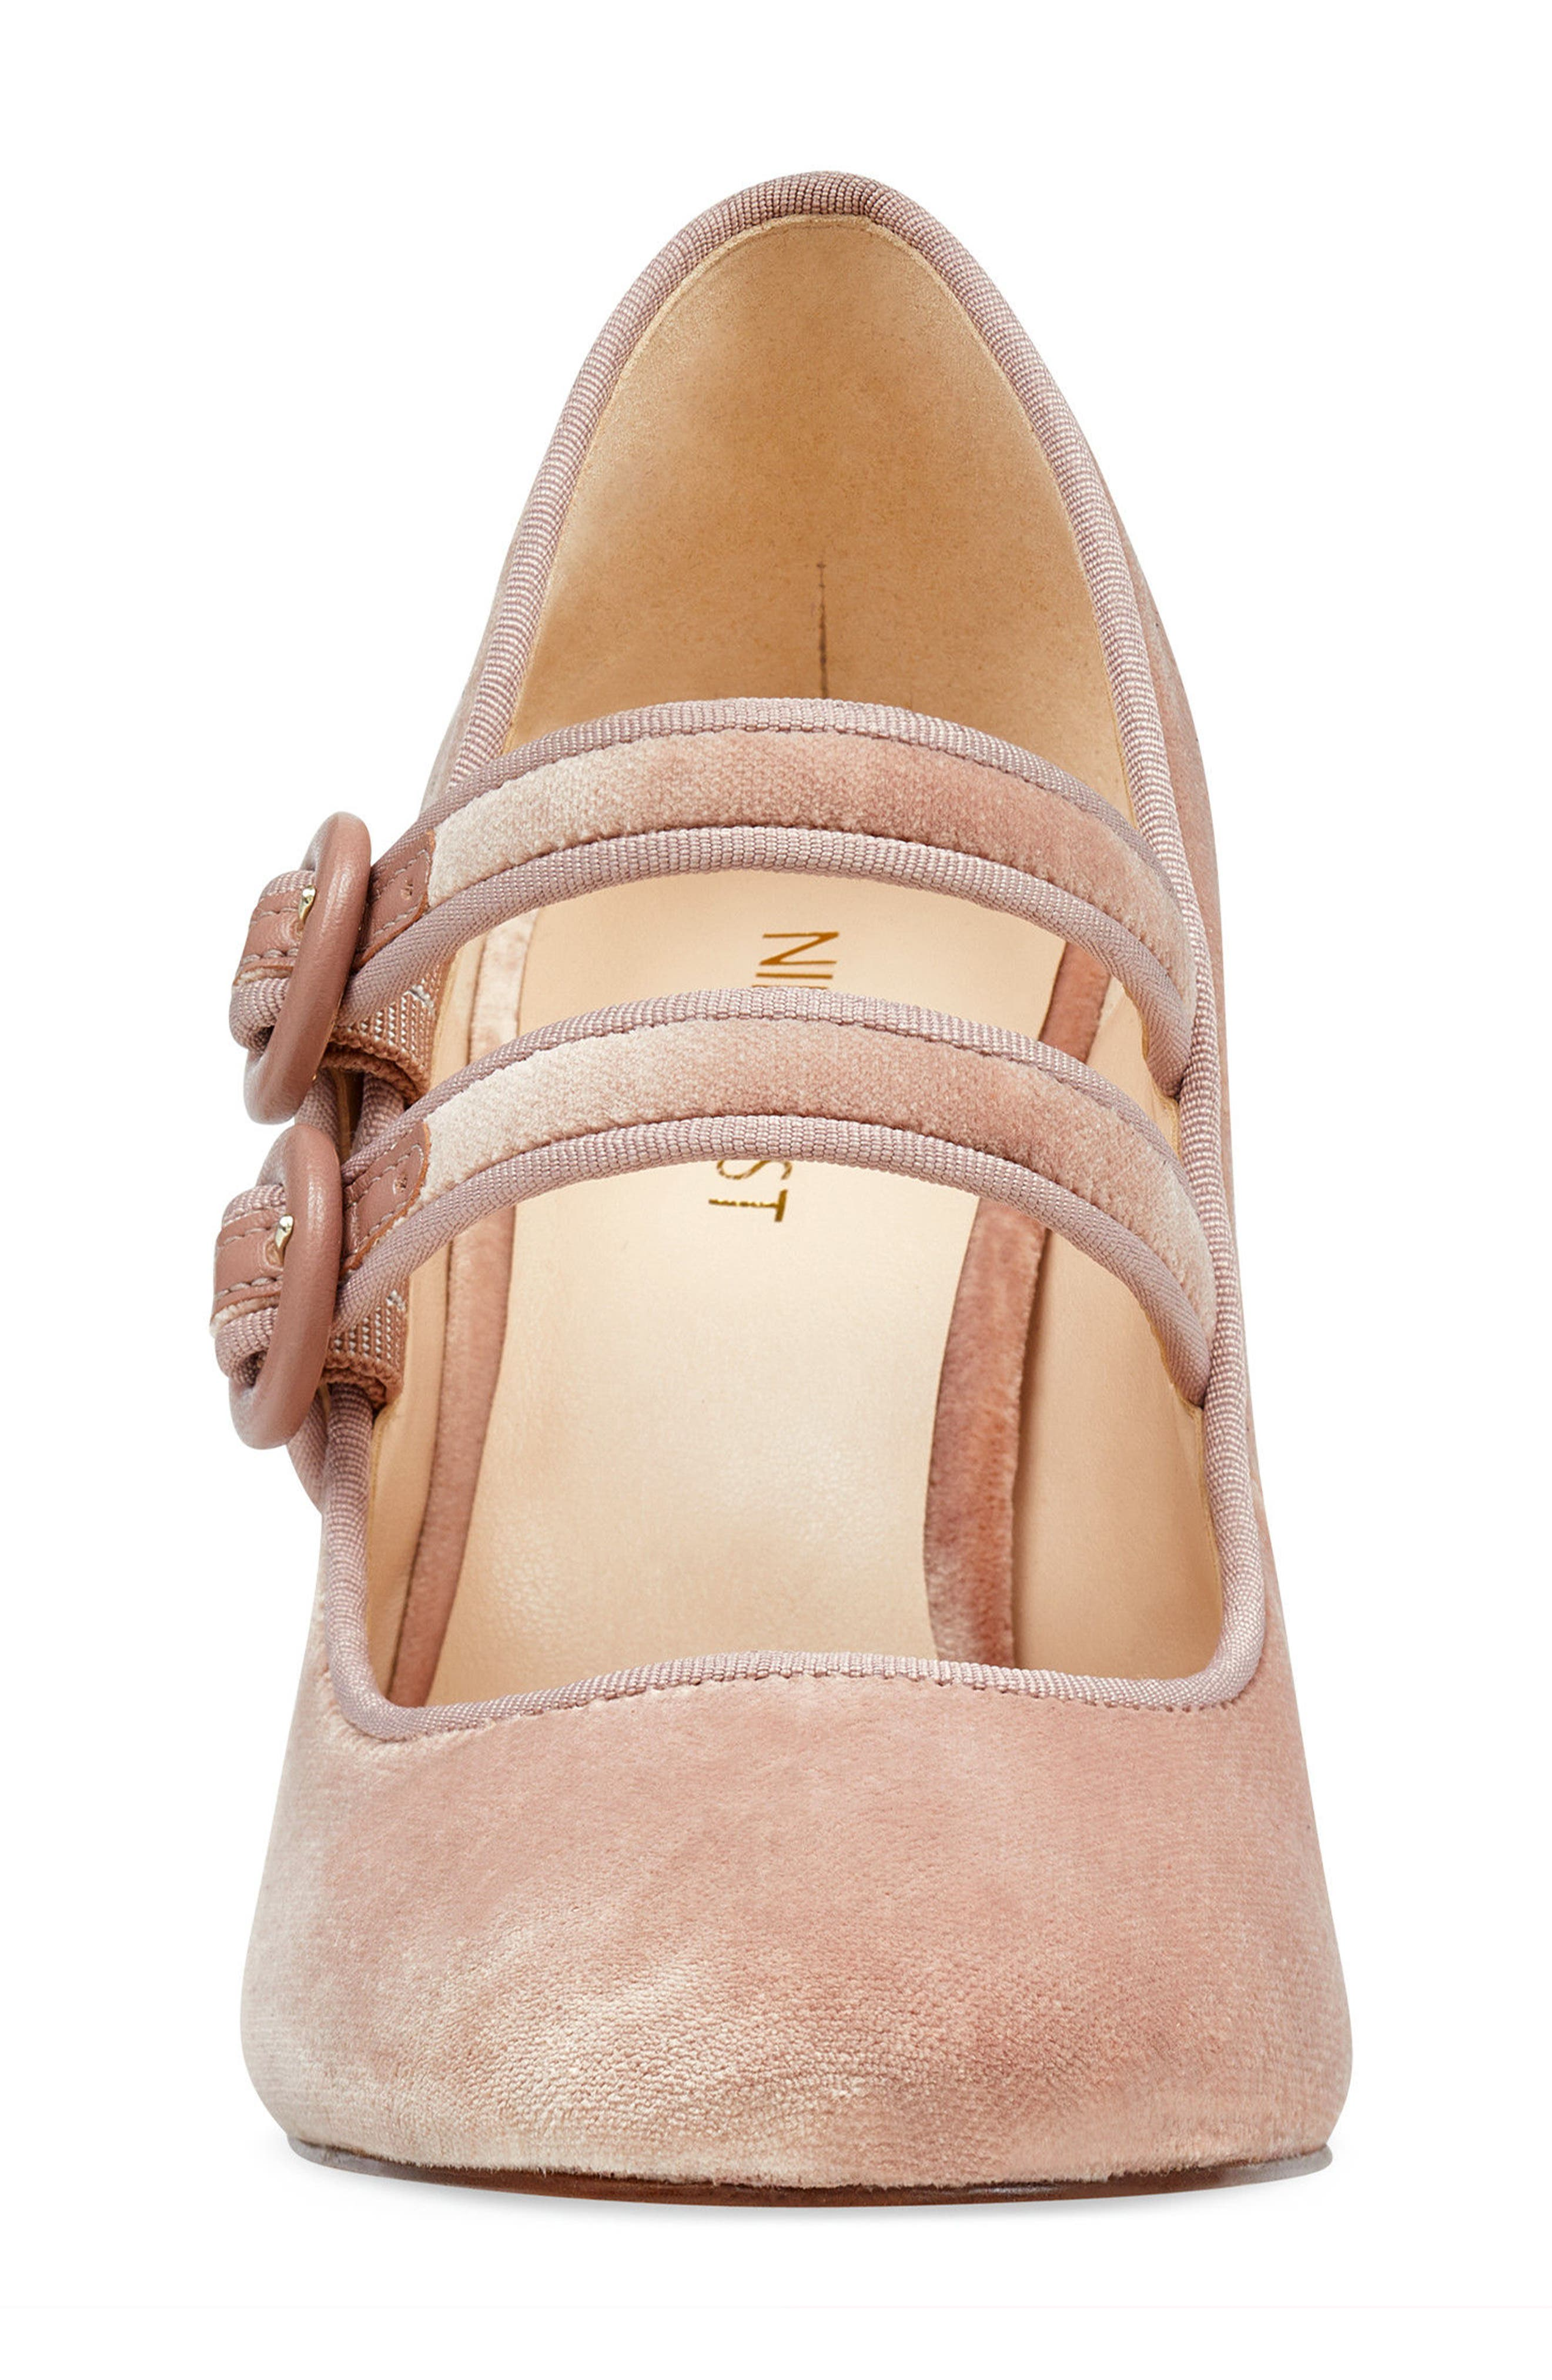 Dabney Double Strap Mary Jane Pump,                             Alternate thumbnail 4, color,                             Natural Fabric